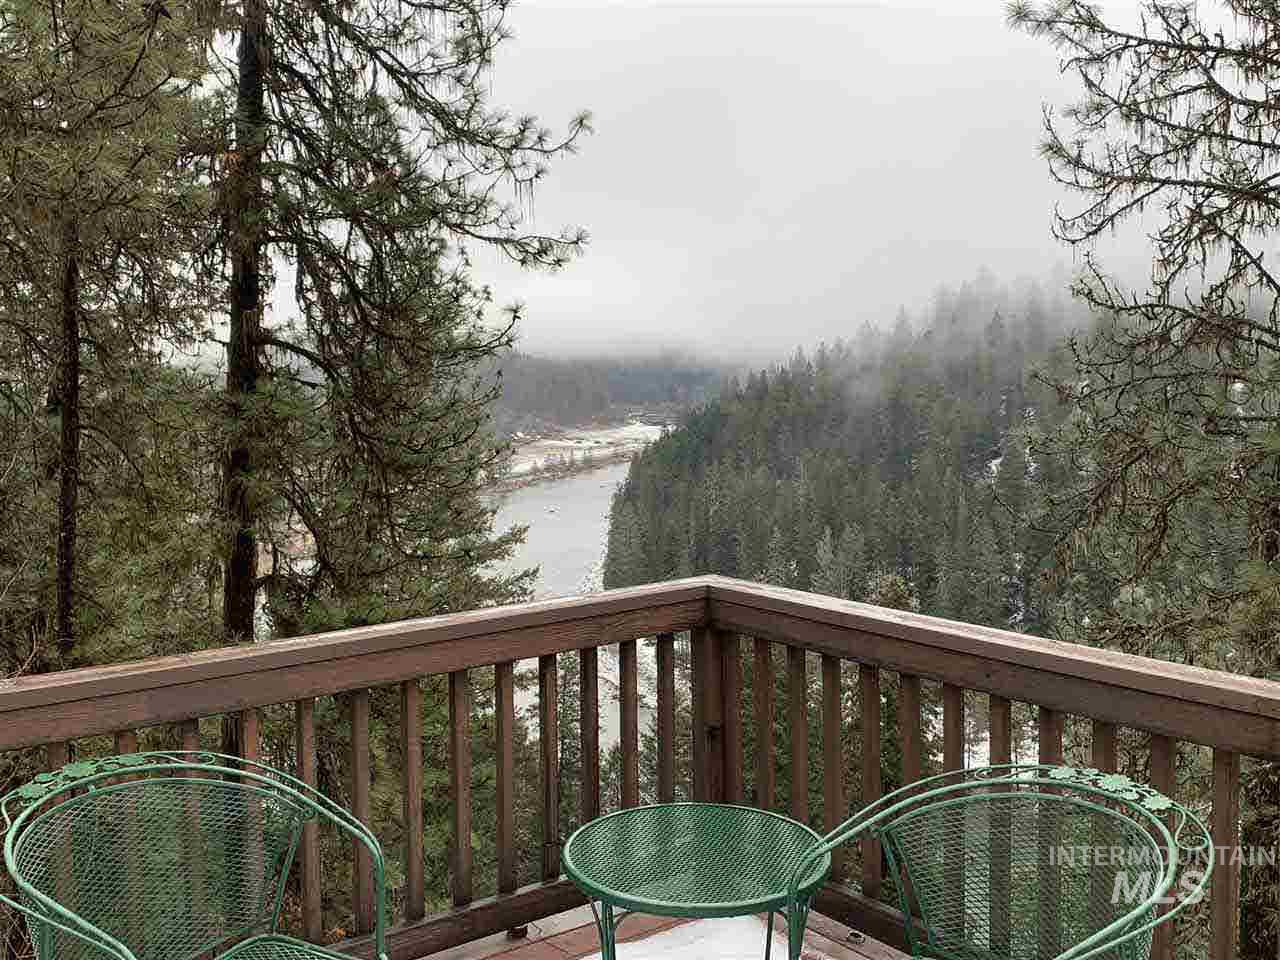 MOTIVATED TO SELL! Located on the MIDDLE FORK OF THE CLEARWATER is this 3700 sf home on 36+acres. Ample wildlife, shop RV bldg., fruit trees, timber, river view; SPORTSMAN'S PARADISE! Gorgeous house w/master bdrm/bath, formal living/dining w/open floor plan and kitchen on main, 3 bdrms/3/4 bath, kitchen, family/game room plumbed for bar w/wood stove, laundry room & walk-out in basement. Water rights from the river, spring, 1200 gal. storage tank, & numerous extras. Give us a call!